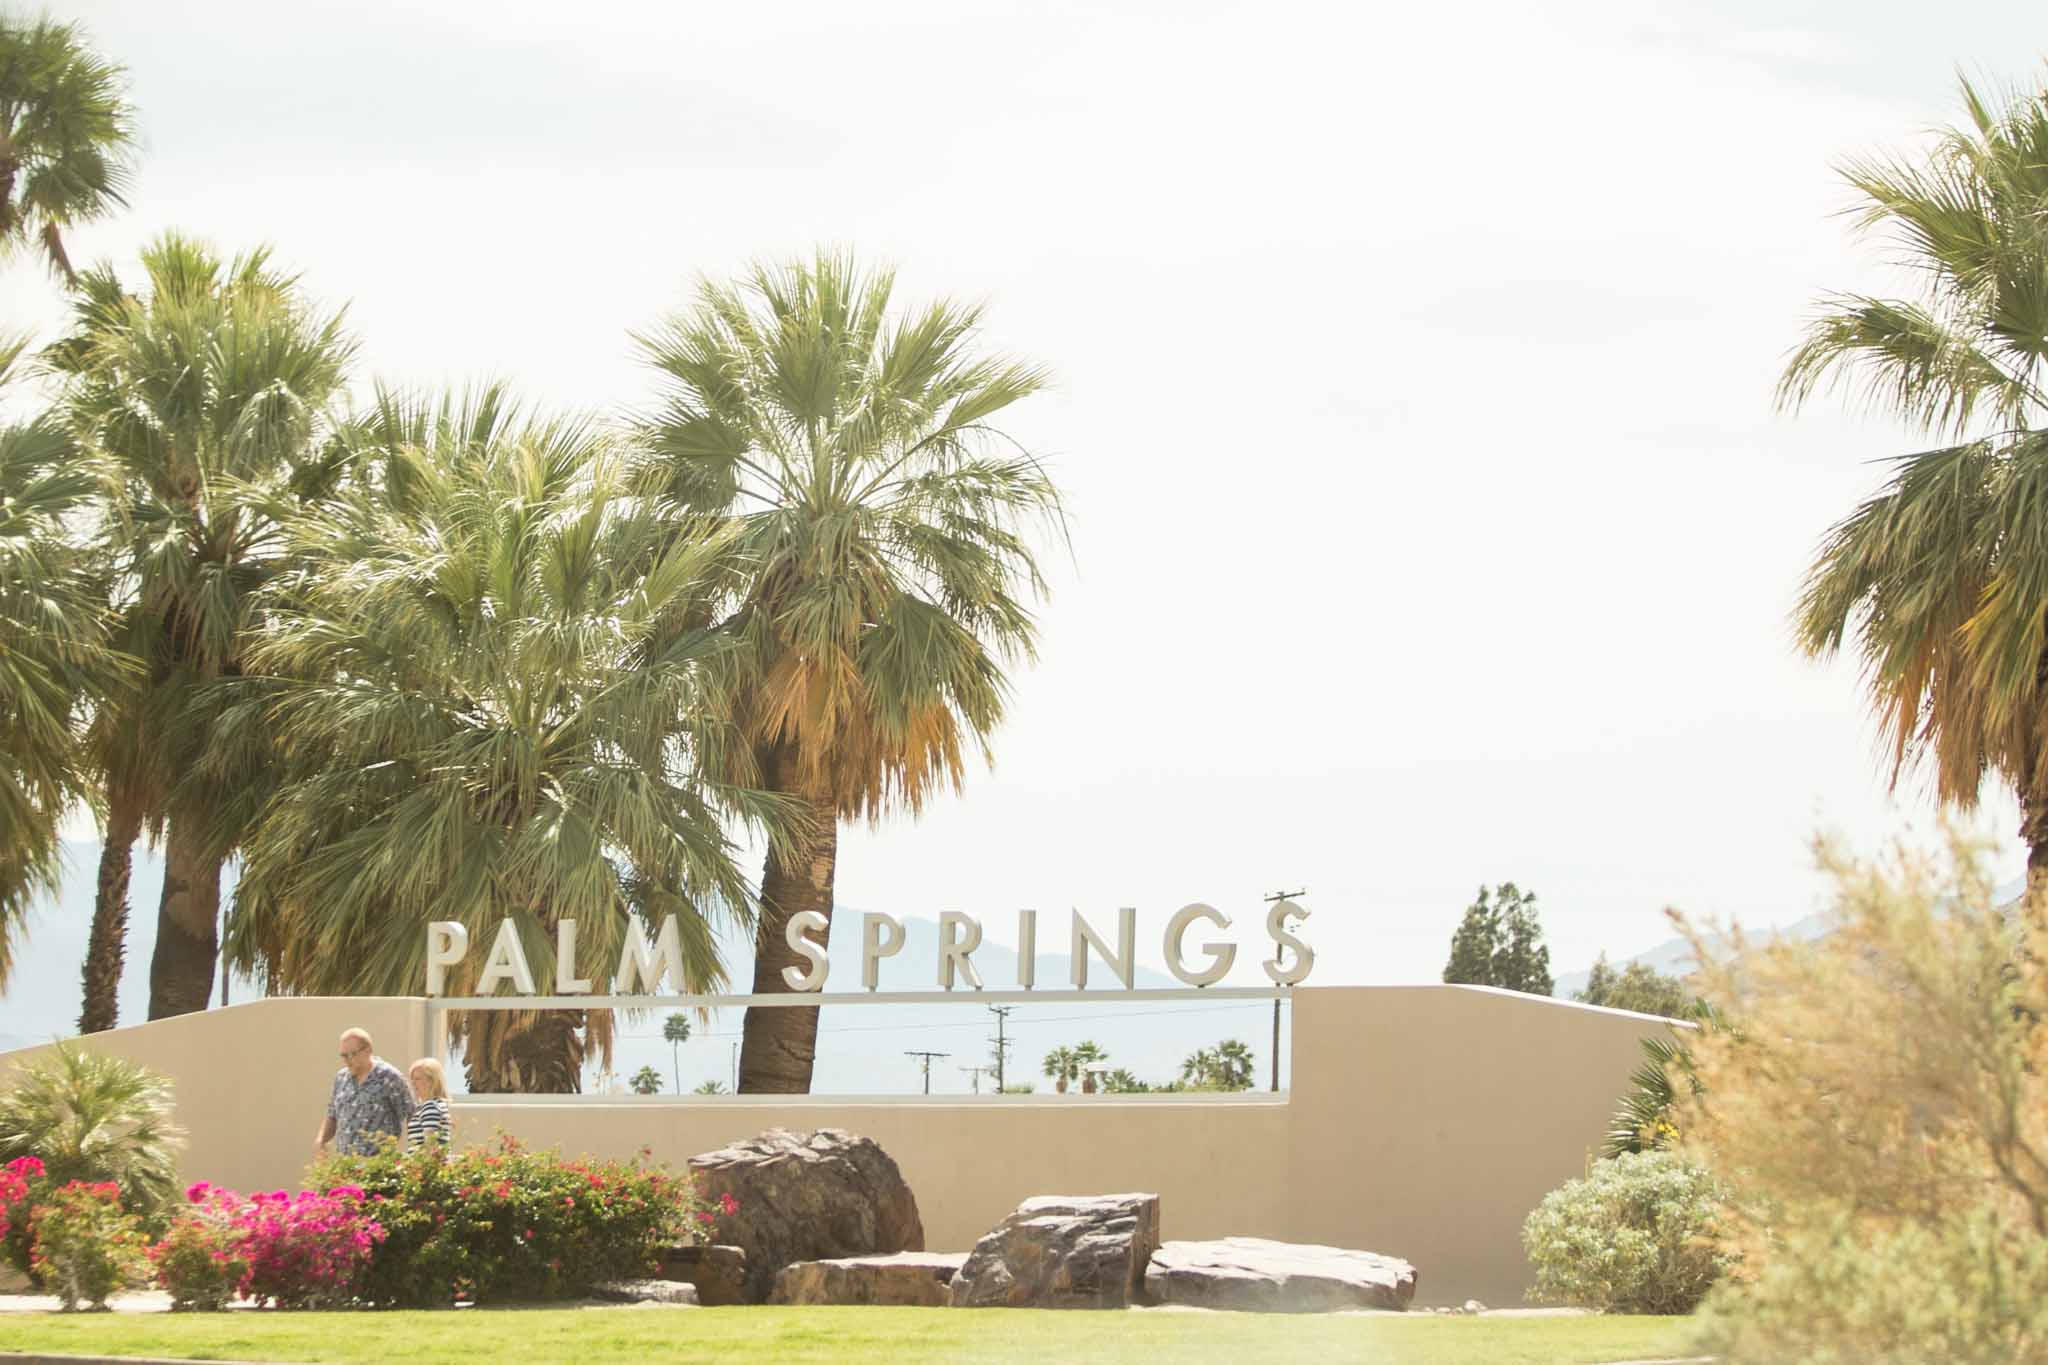 Warm Palm Springs, shot through the car window as we passed through.